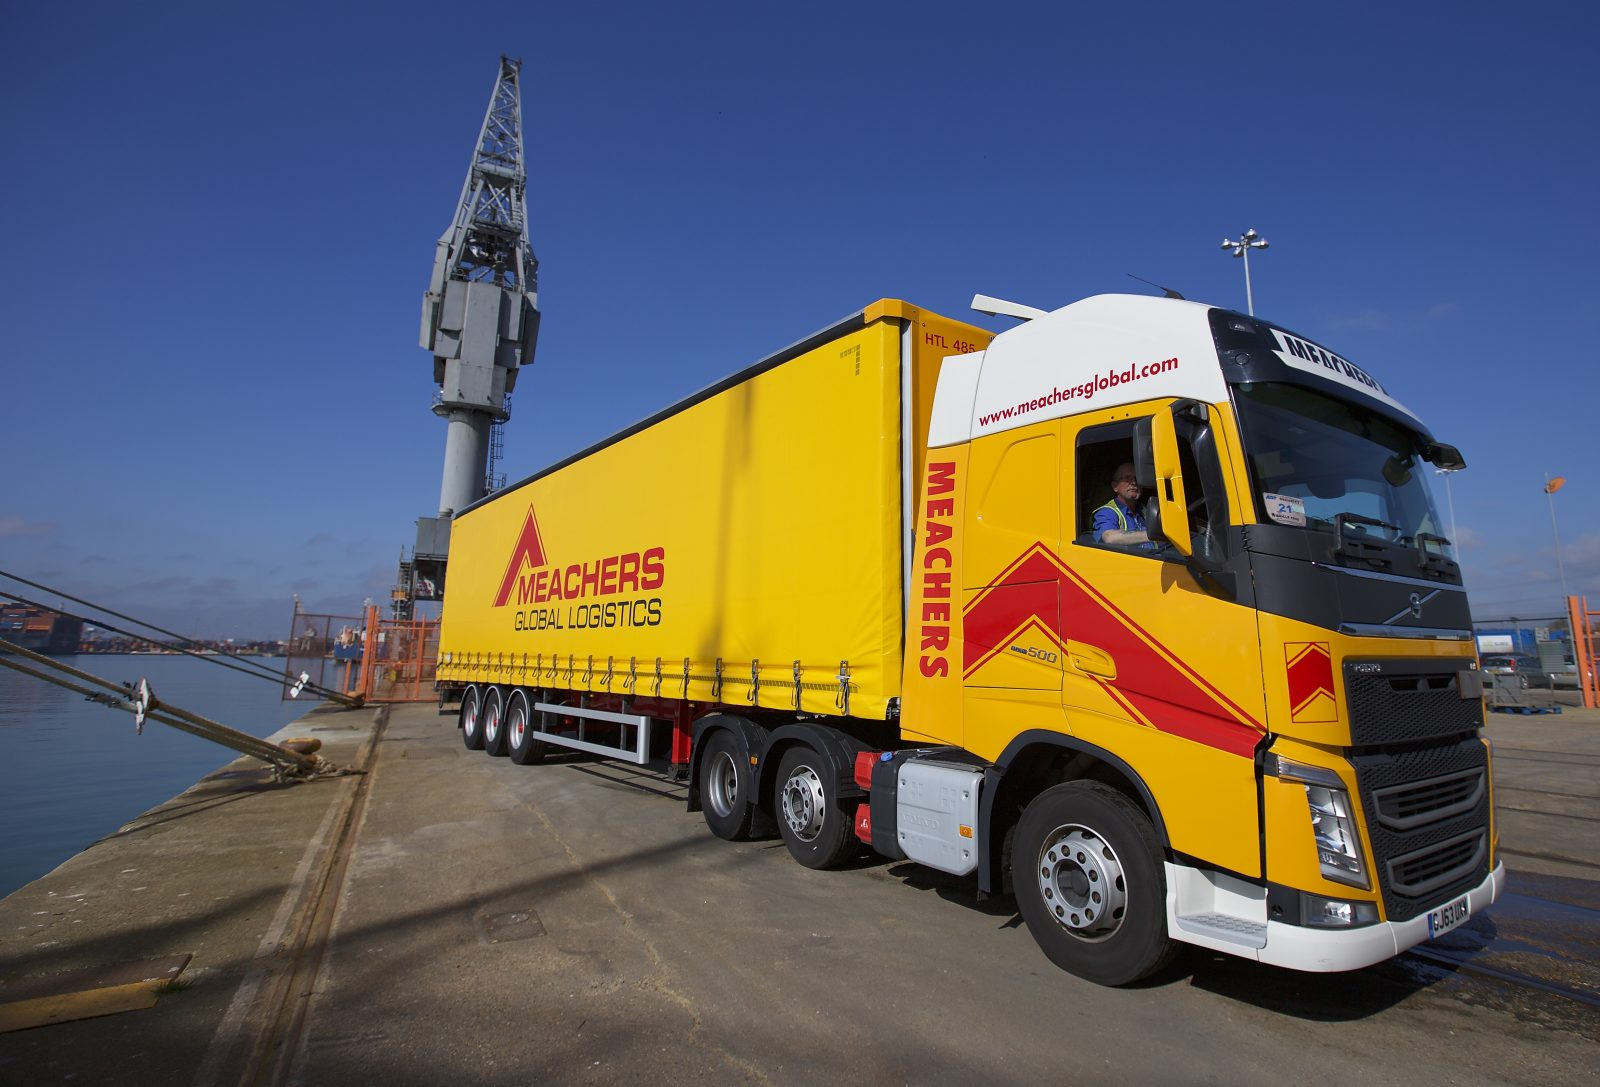 Meachers Global Logistics lorry operating Freight Forwarding solutions